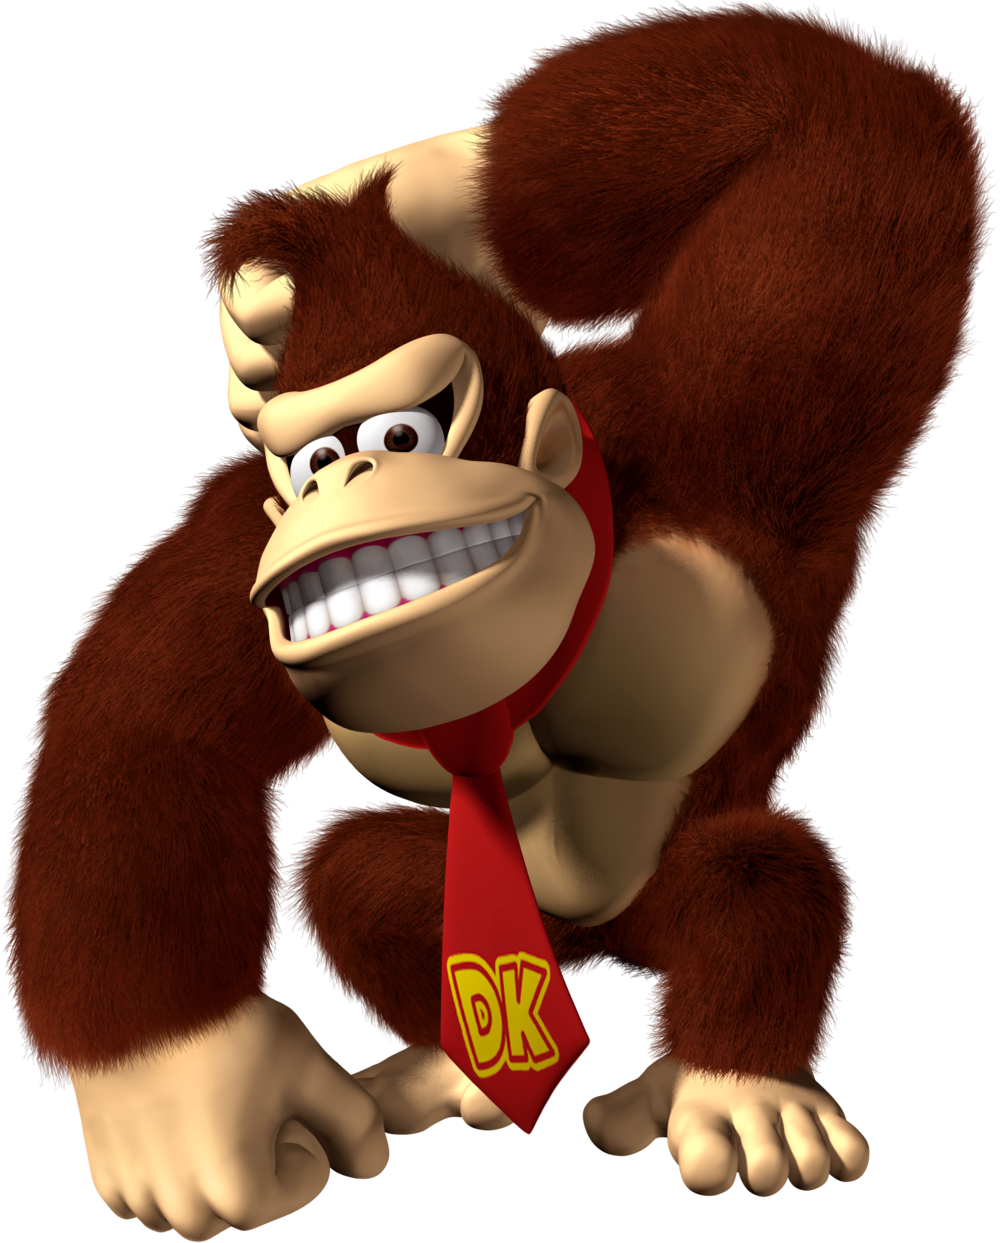 Donkey Kong - Donkey Kong: Tropical Freeze brings our favorite barrel smashing Ape to the switch! After being originally released on Wii U (and we all know how that ended) the game has been re-realeased for Nintendo Switch, with better graphics and  the addition of a new playable character, Donkey Kong's surfer dude cousin, Funky Kong. In my opinion, this is exactly the kind of games I want for my switch. I love the fast paced level design, and the option to pop off the Joy-cons and let a friend play as Diddy, Dixie, or Cranky Kong. This game captures everything we wanted from the Donkey Kong Country franchise, including a sturdy challenge for lovers of the platforming genre!